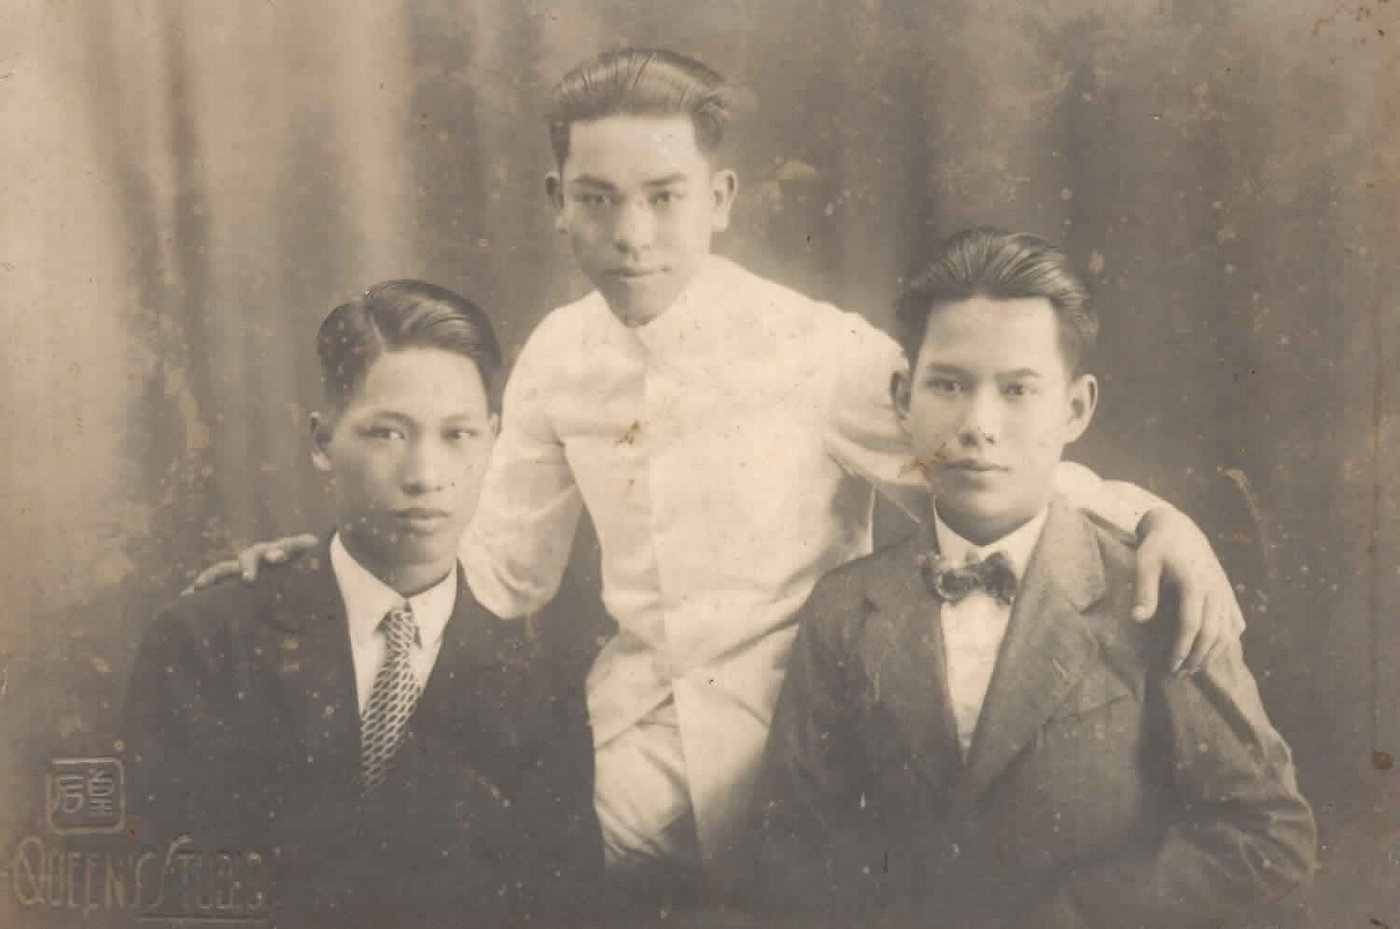 Carlton K. Mack (far right) with his brother and cousin before moving to Trinidad in 1932